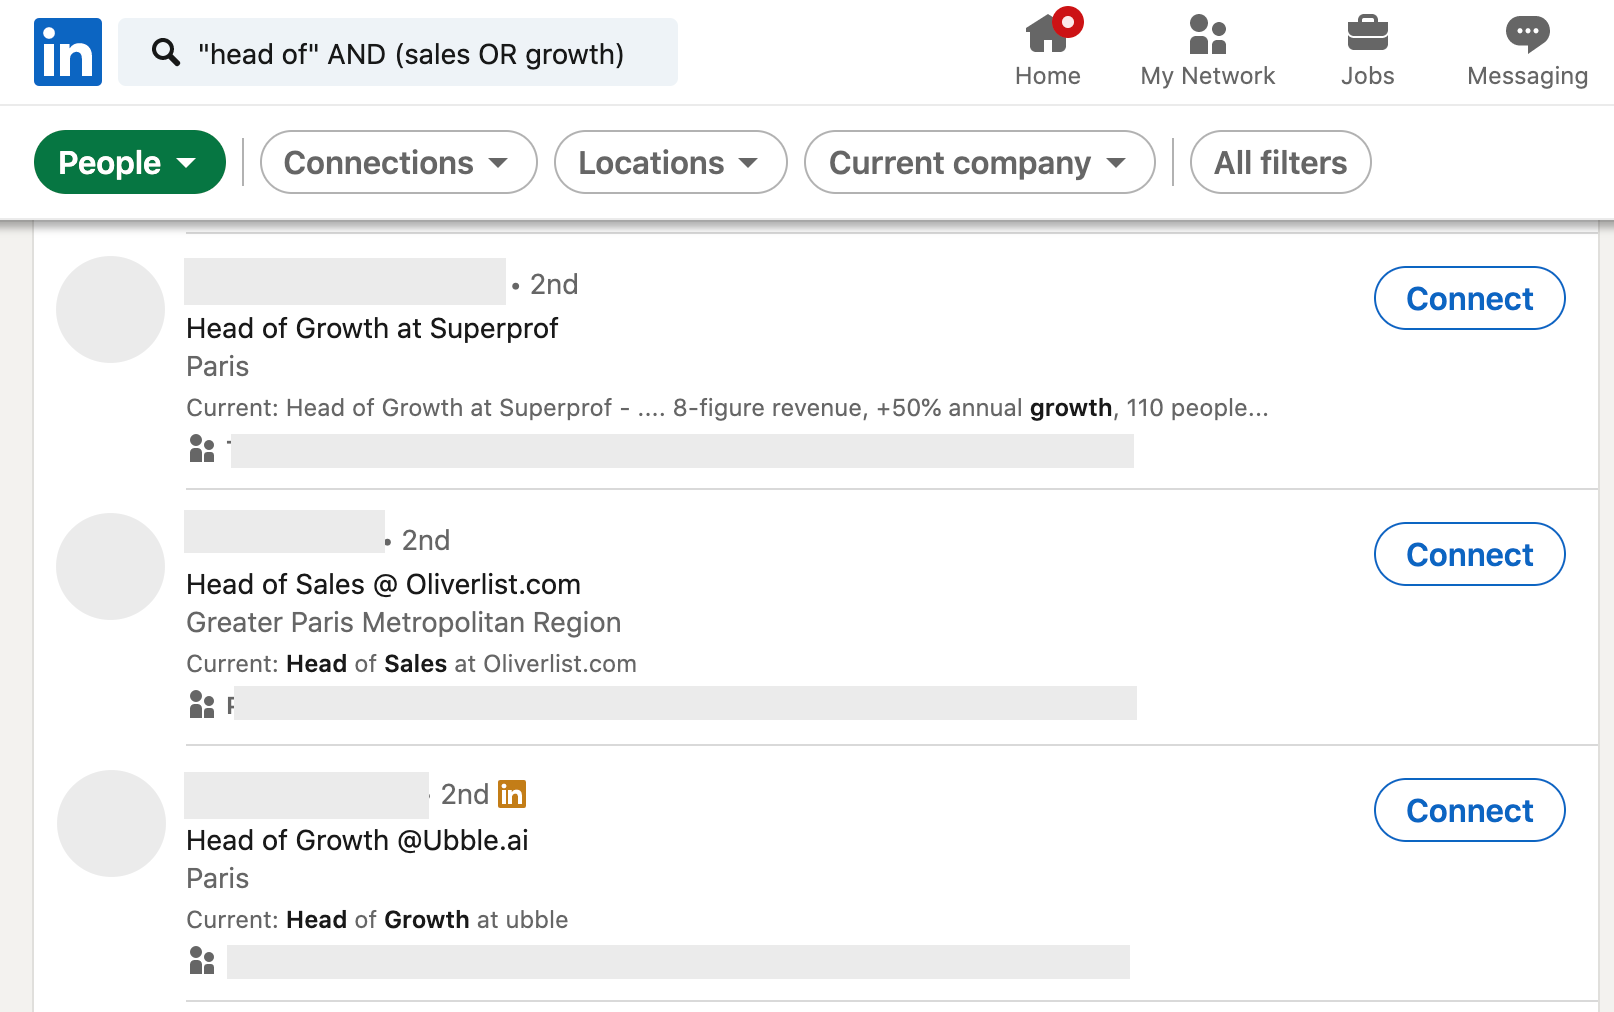 Generating leads on LinkedIn with filters